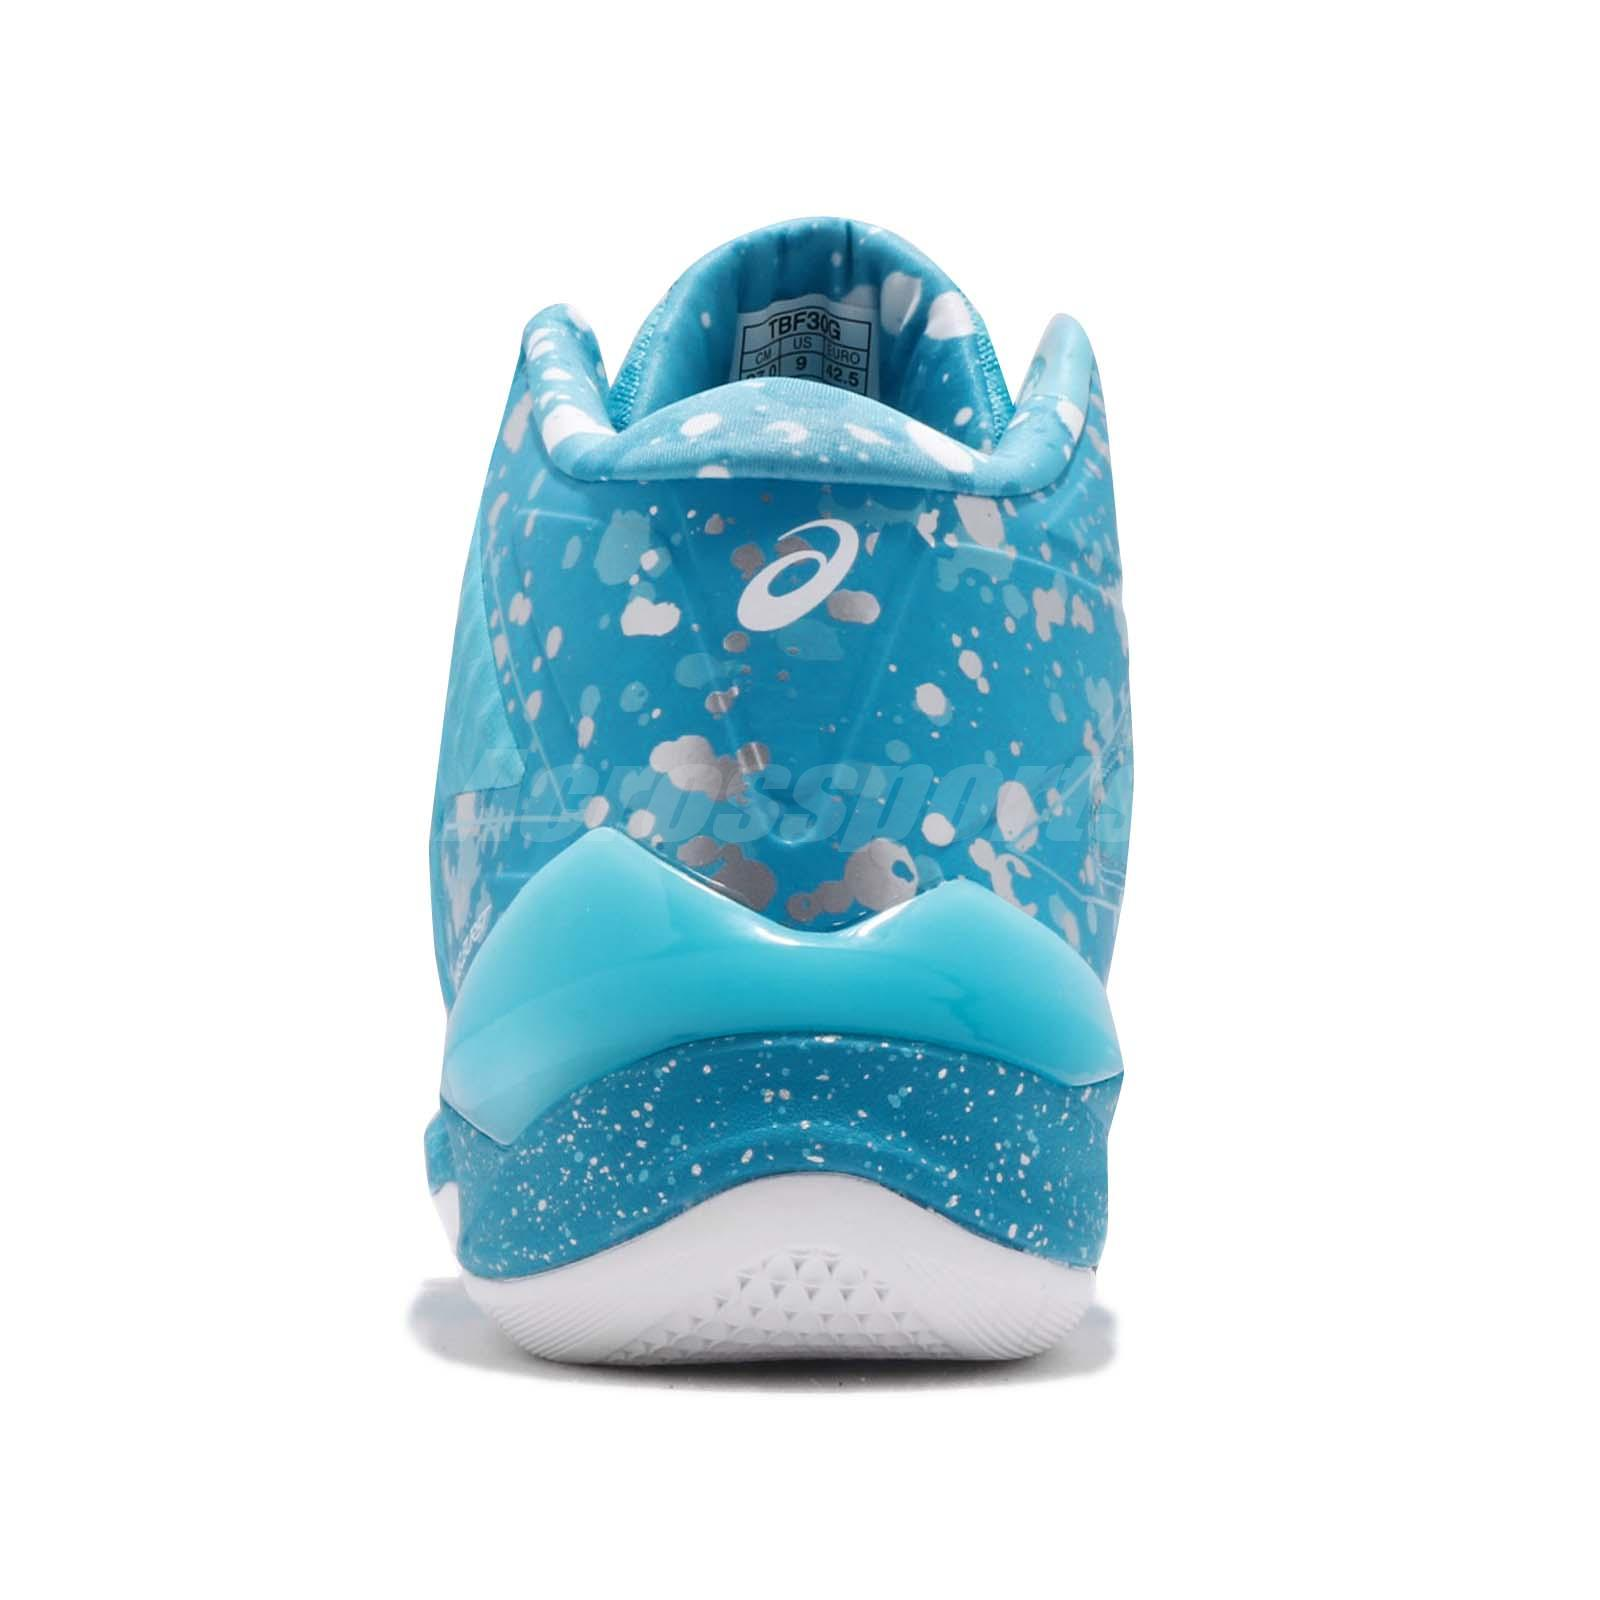 Asics Gel-burst 21 Ge Hi Aqua Island Blue Men Basketball Shoes Tbf30g-3941 Clothing, Shoes & Accessories Men's Shoes